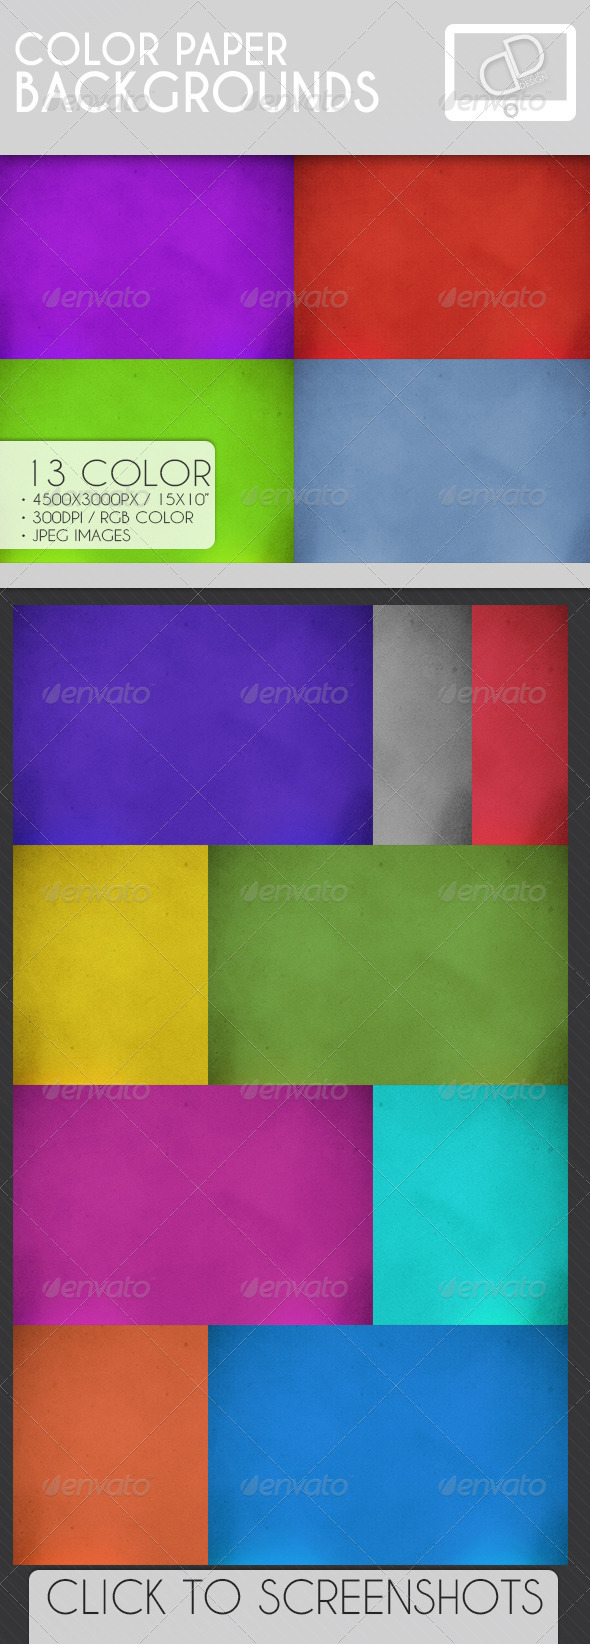 Color Paper Backgrounds - Backgrounds Graphics